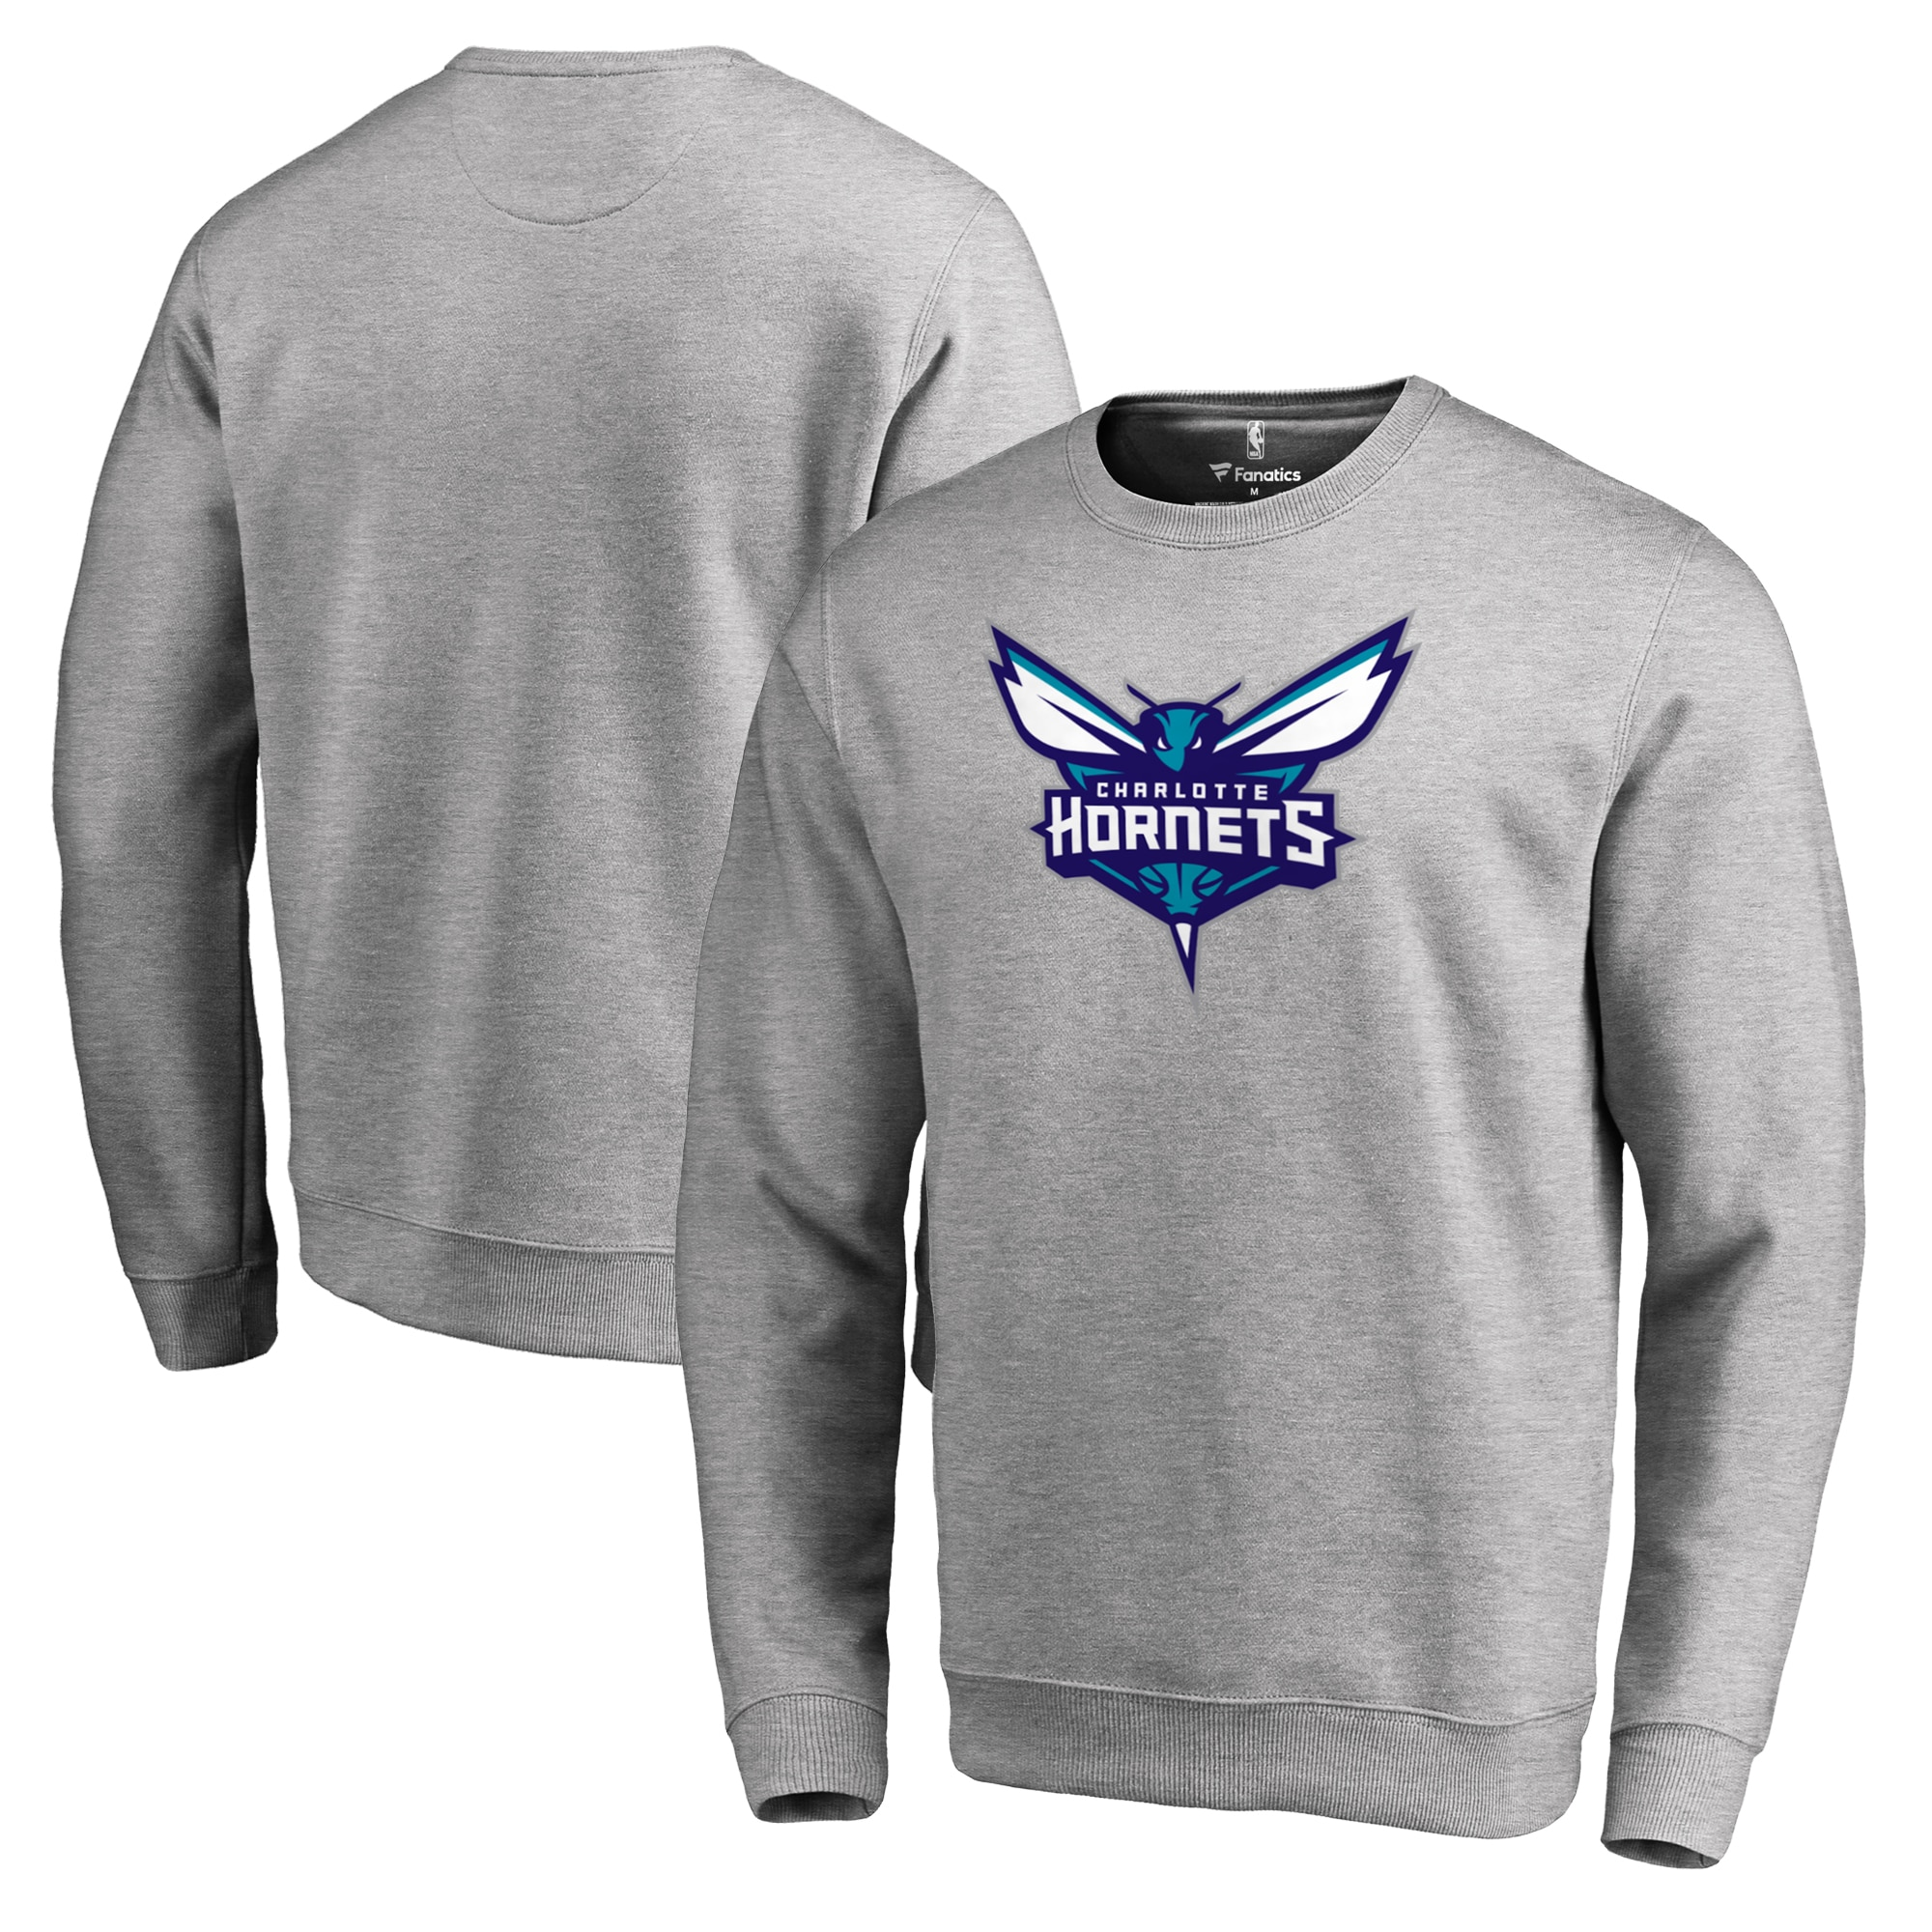 Charlotte Hornets Fanatics Branded Primary Logo Sweatshirt - Heathered Gray